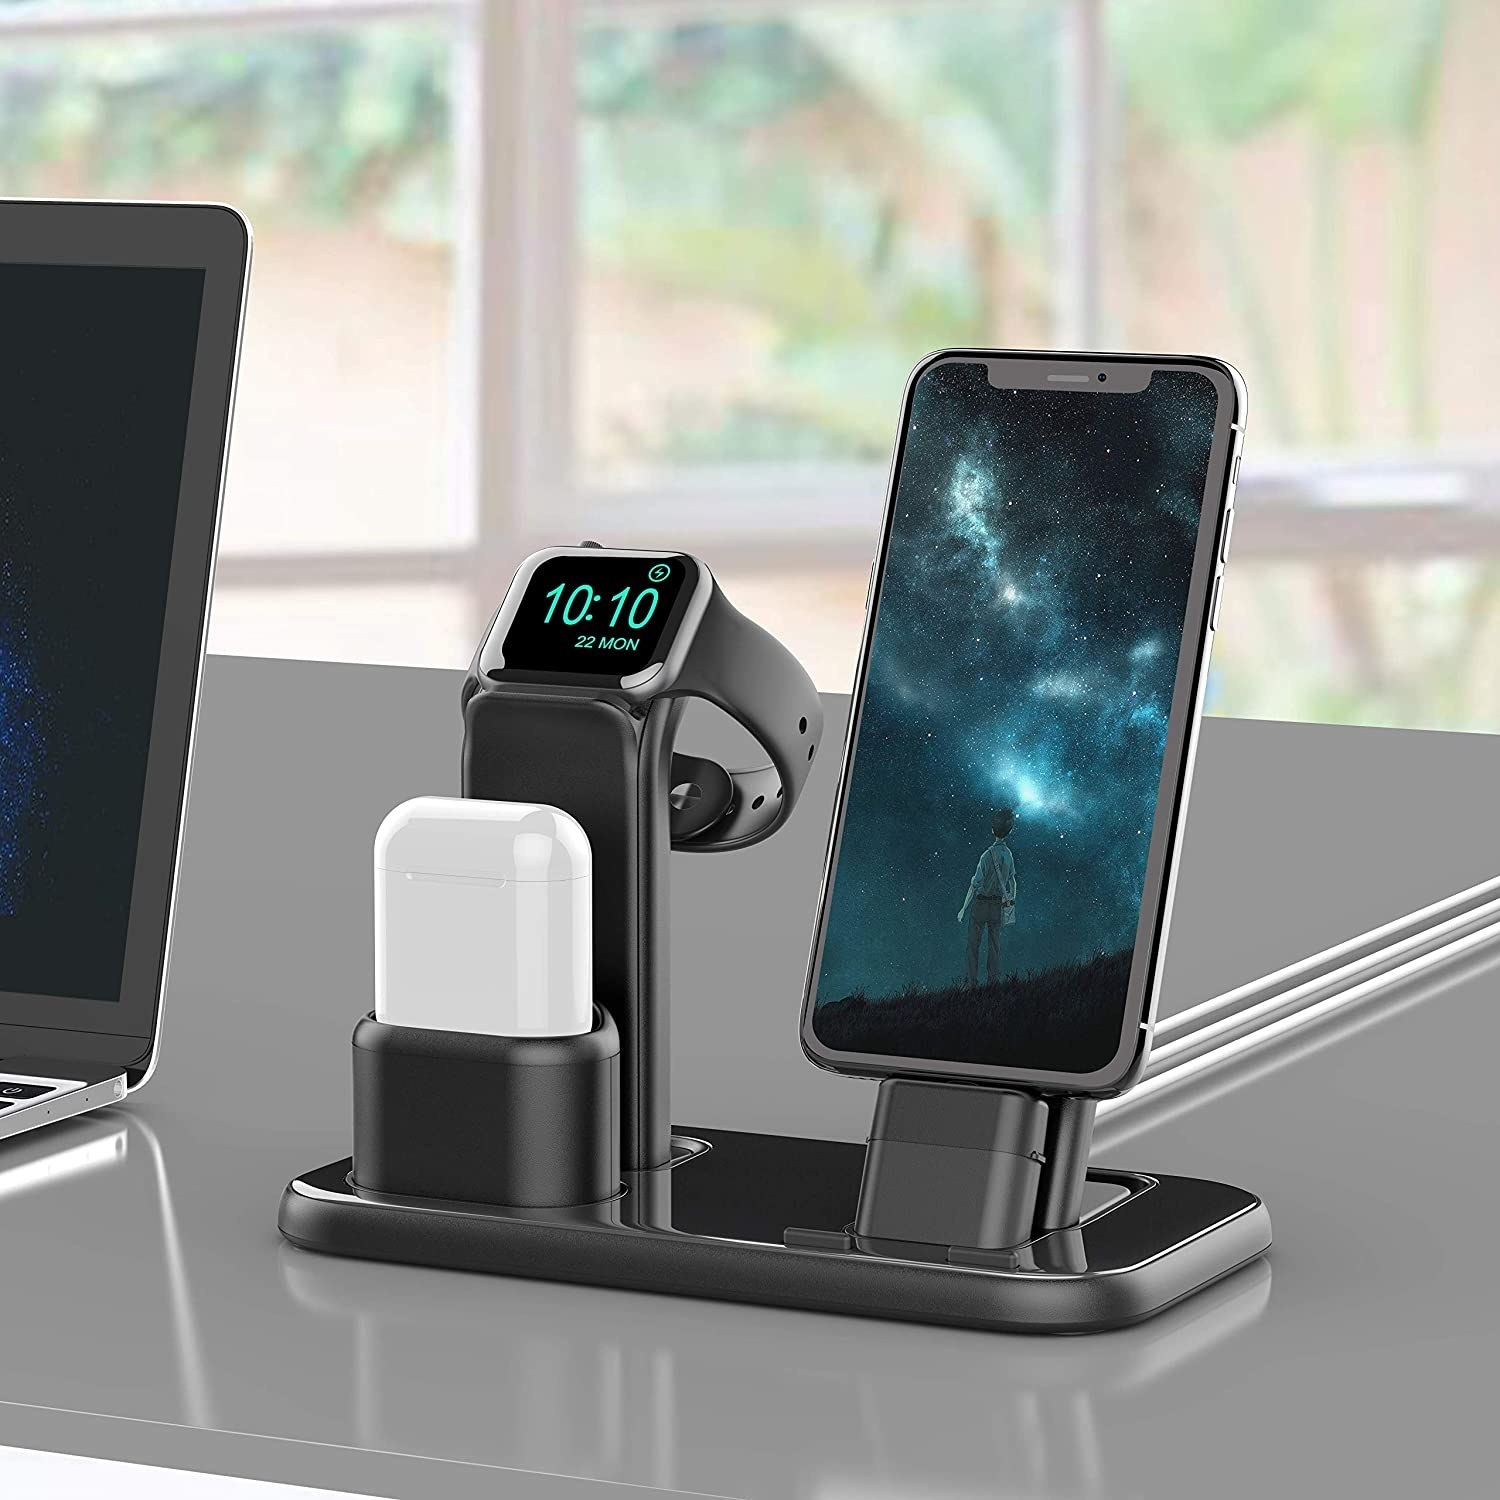 Black three in one charging station with white AirPods, black iPhone and black Apple watch